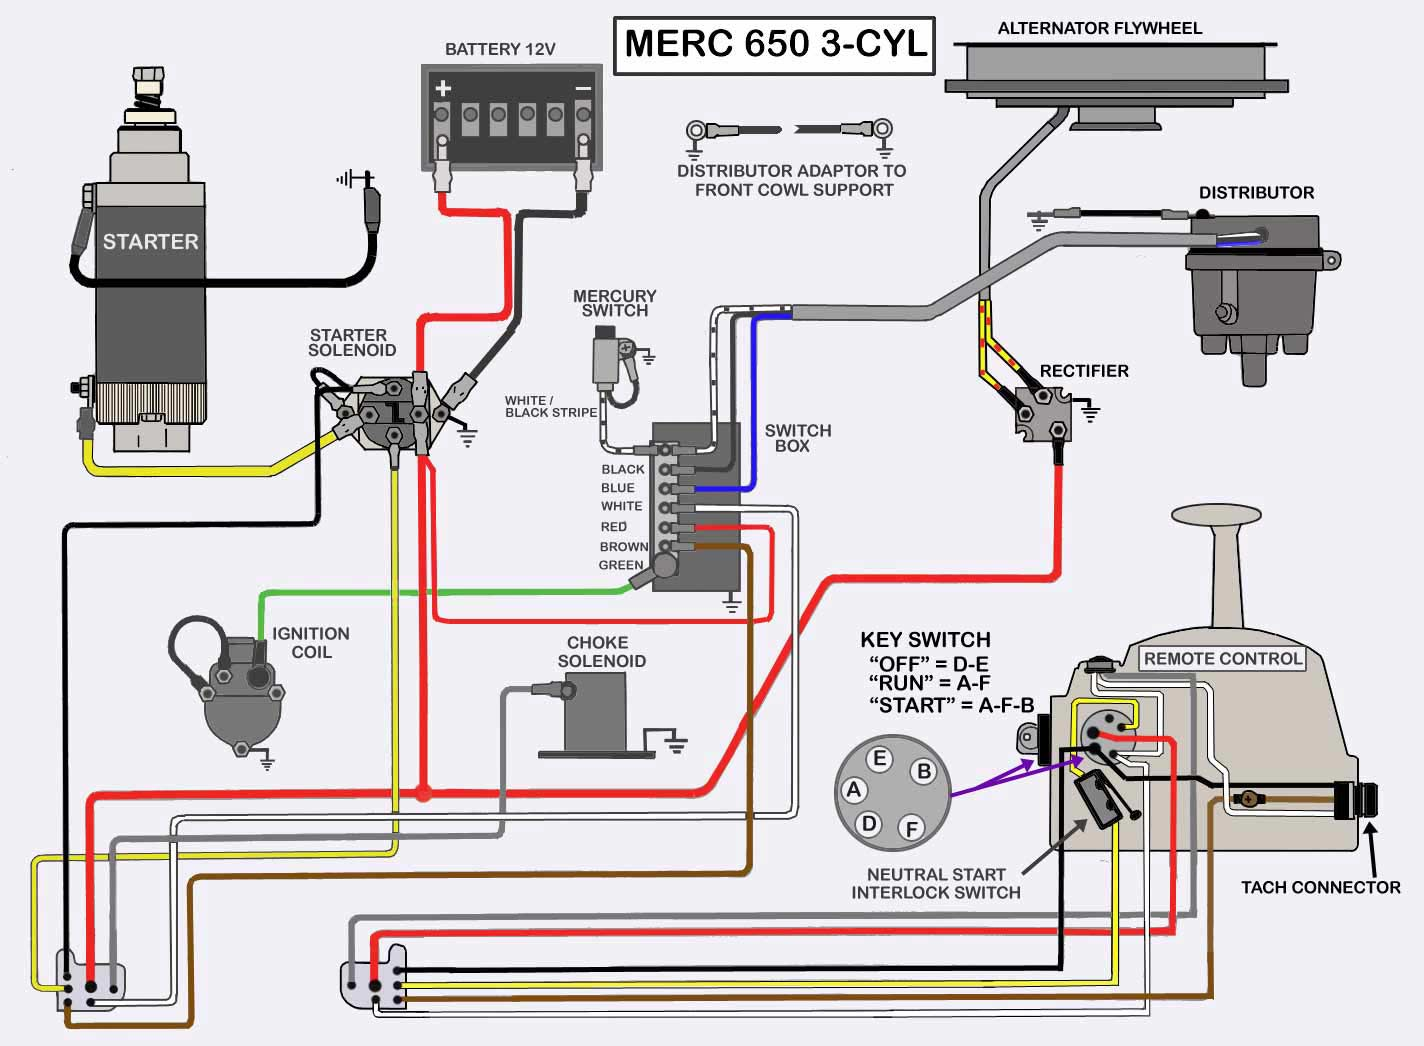 mercury 90 hp outboard motor wiring diagram furthermore mercury 50hp outboard manual furthermore 50 hp mercury outboard wiring diagram mercury 90 hp outboard motor wiring diagram furthermore mercury 50 hp